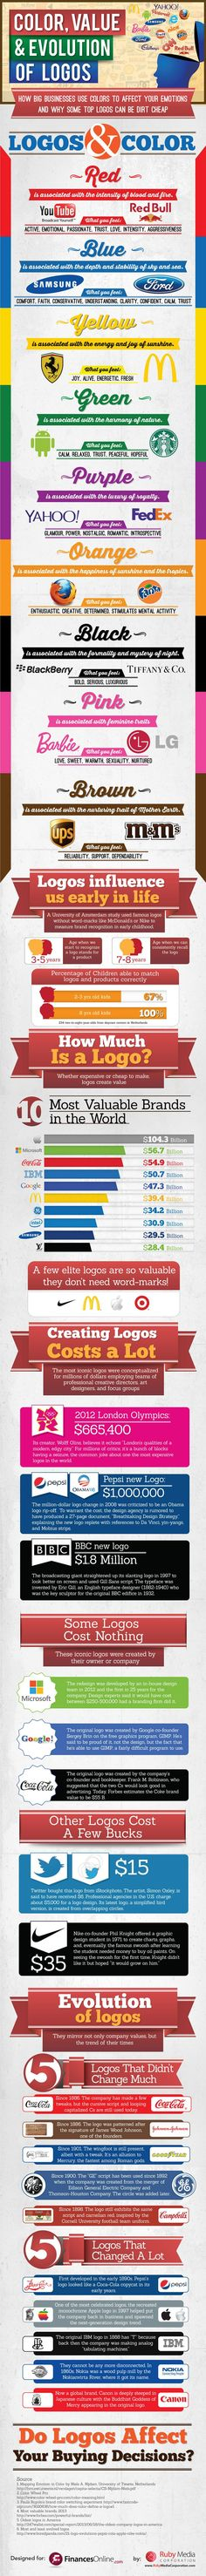 What Does the Color of Your Logo Say About Your Business? #smm